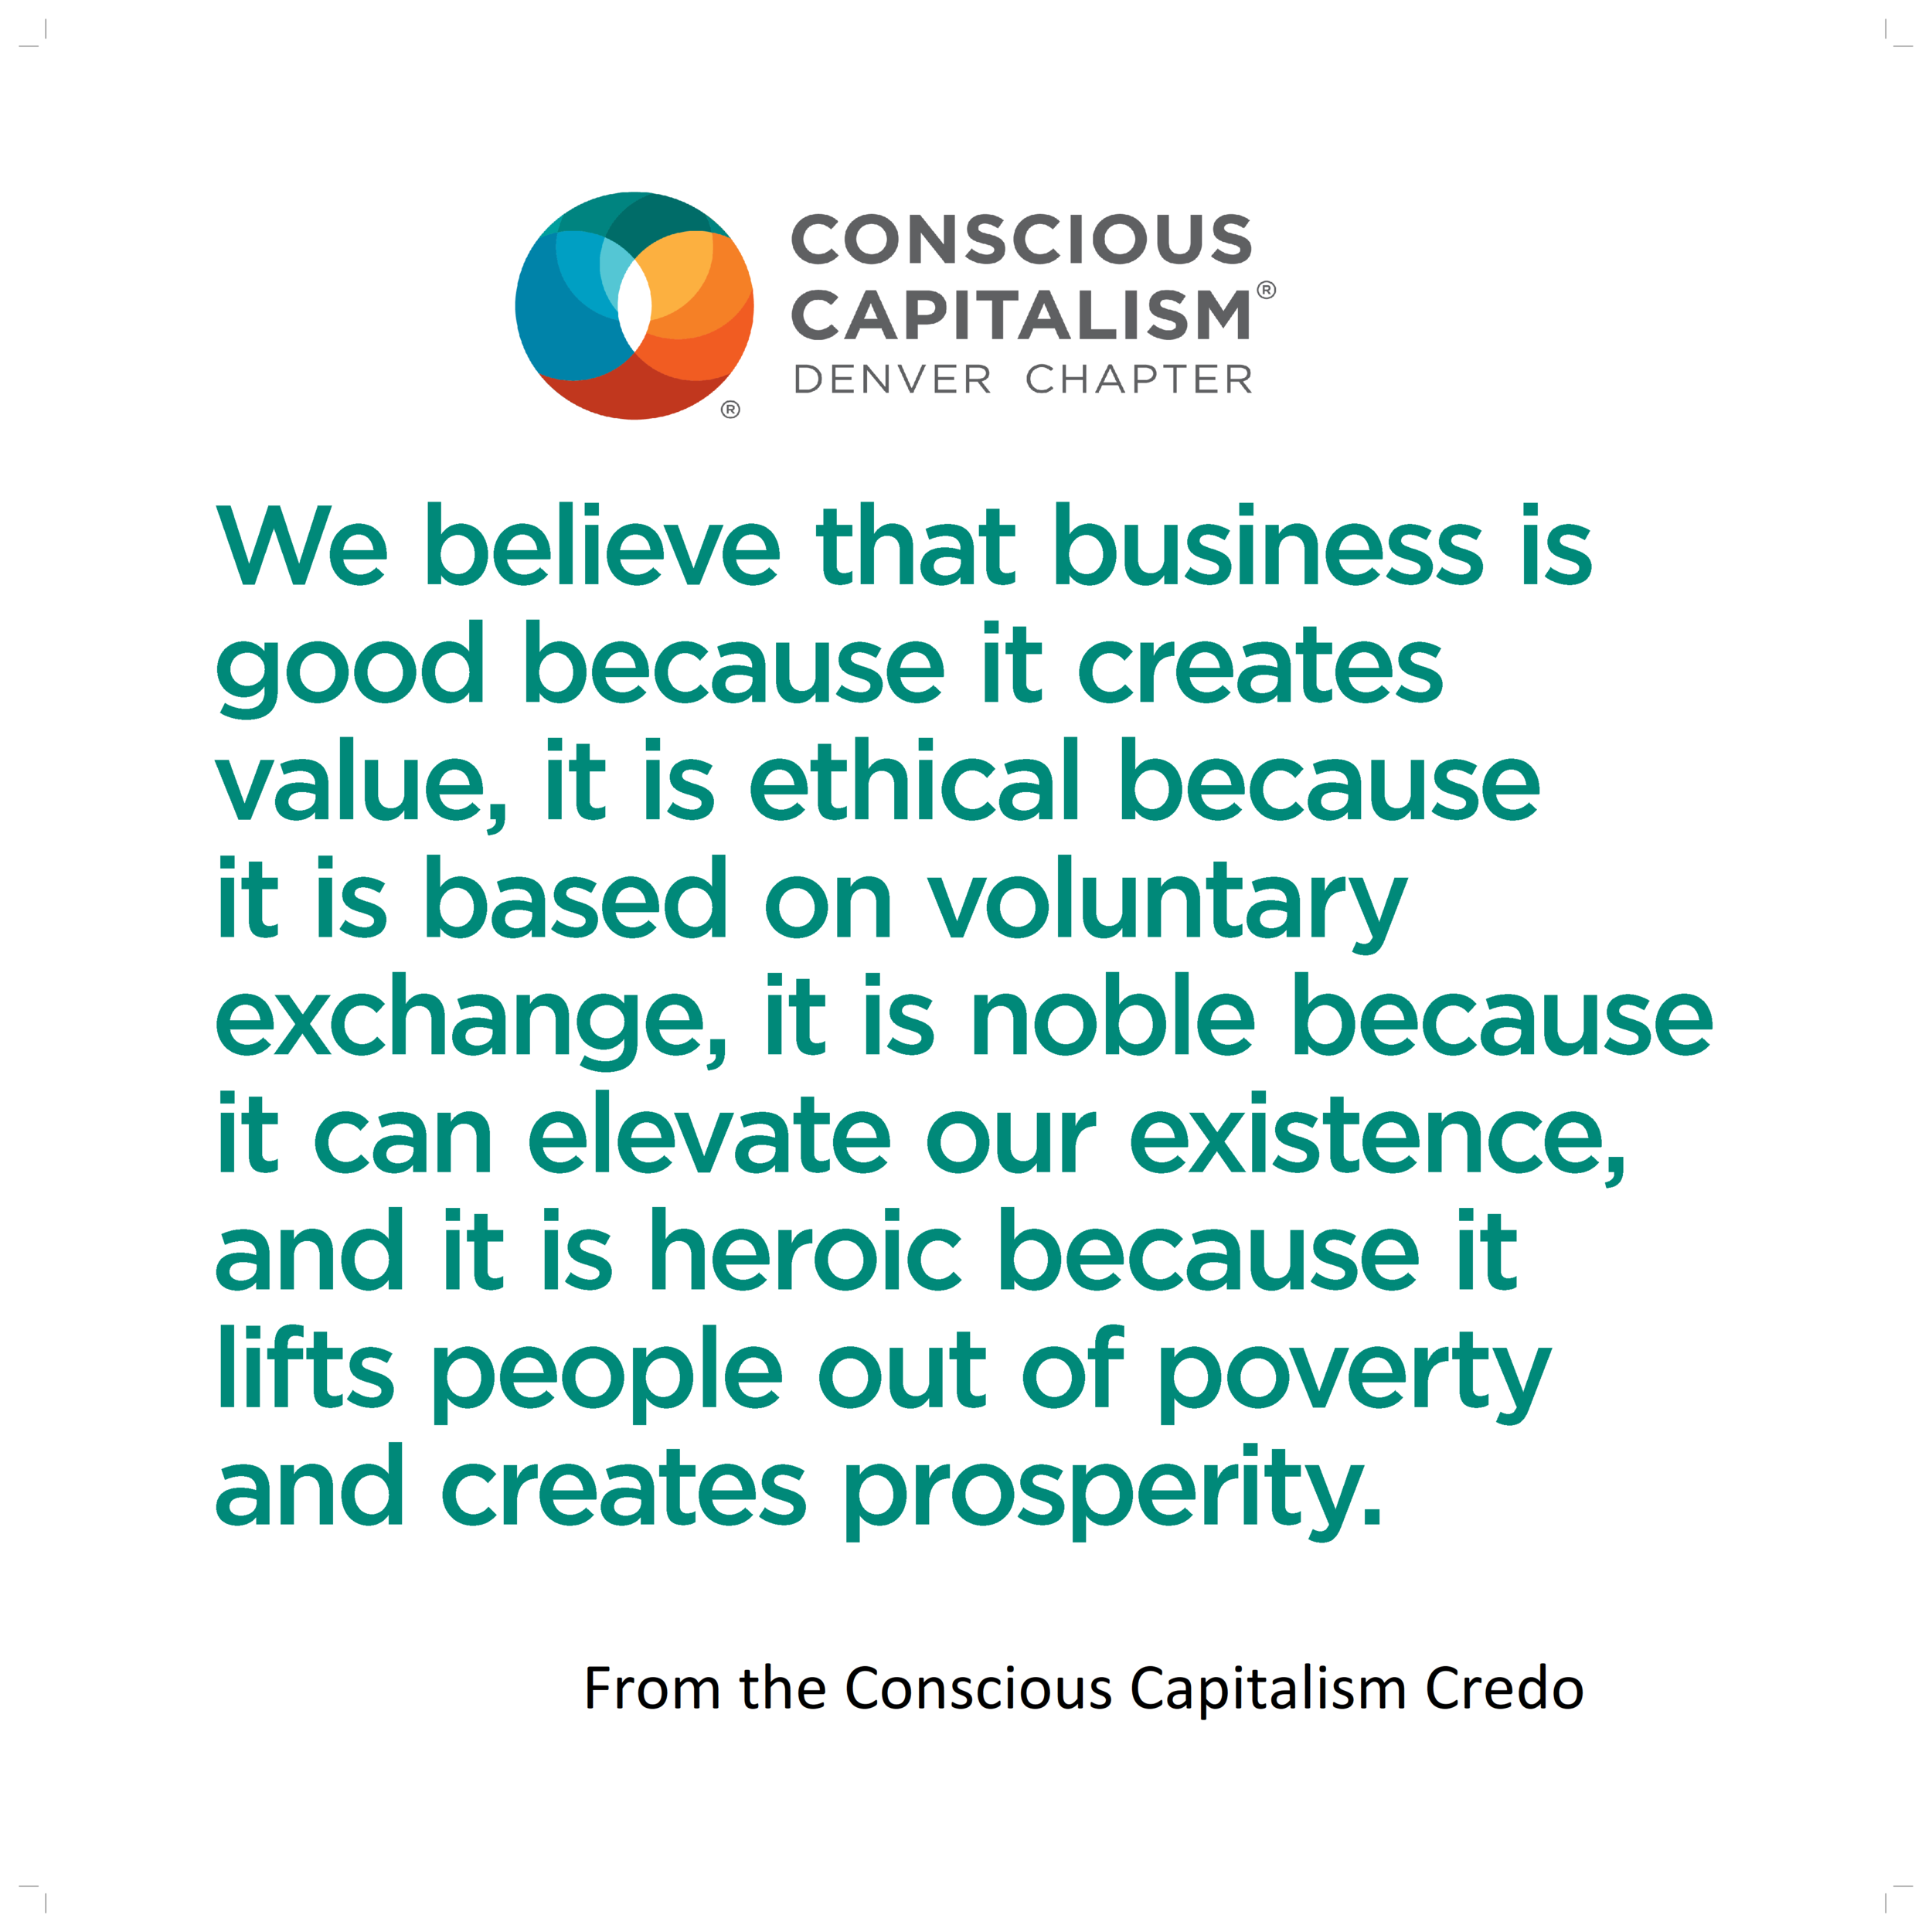 Help us grow the Conscious Capitalist Movement. Feel free to download, print, and share widely with others.